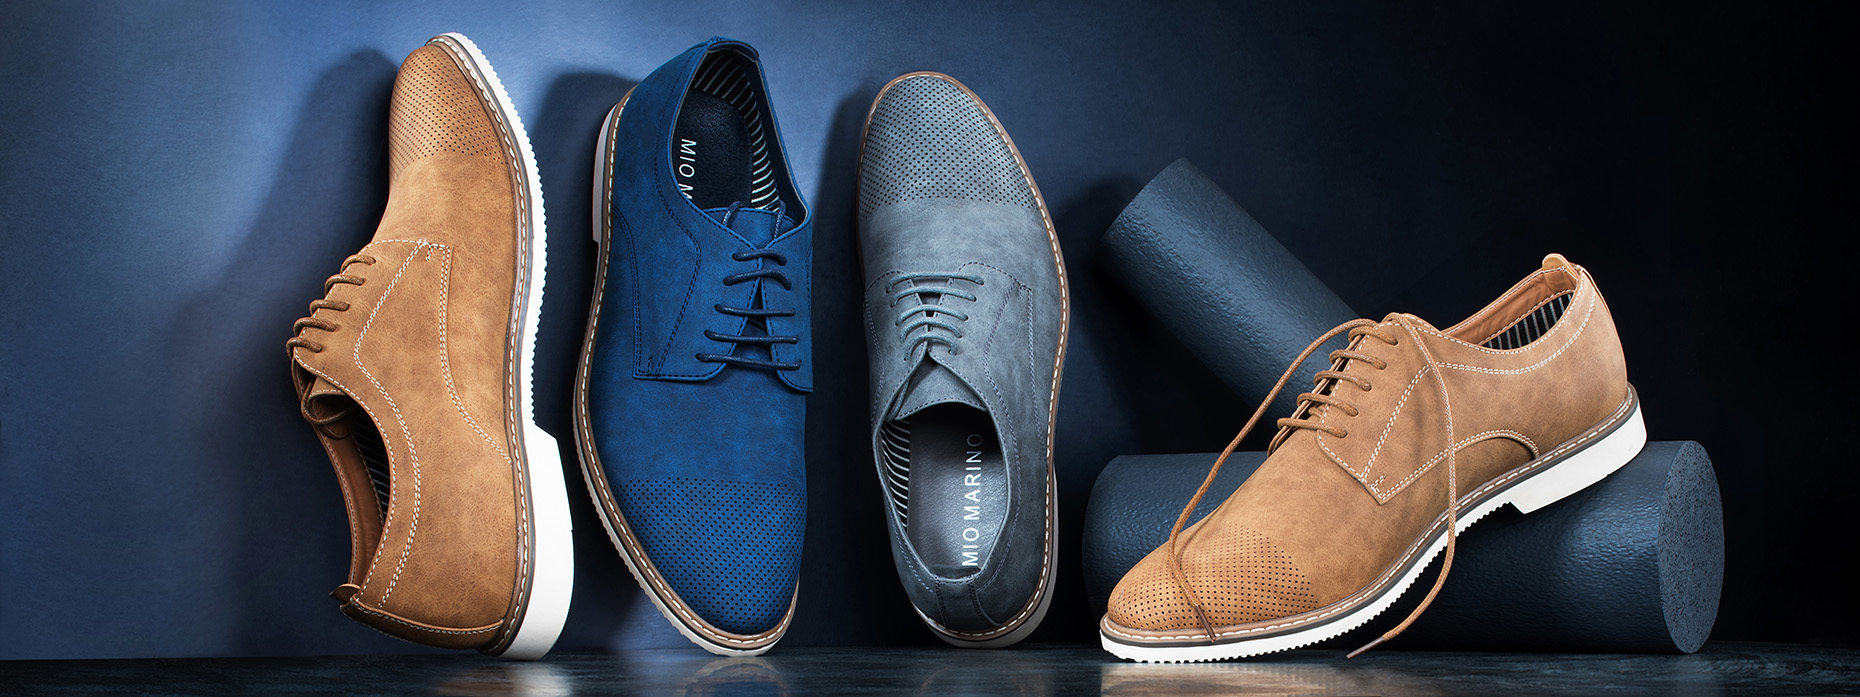 New-york-still-life-fashion-photgraphy-sueded-shoes